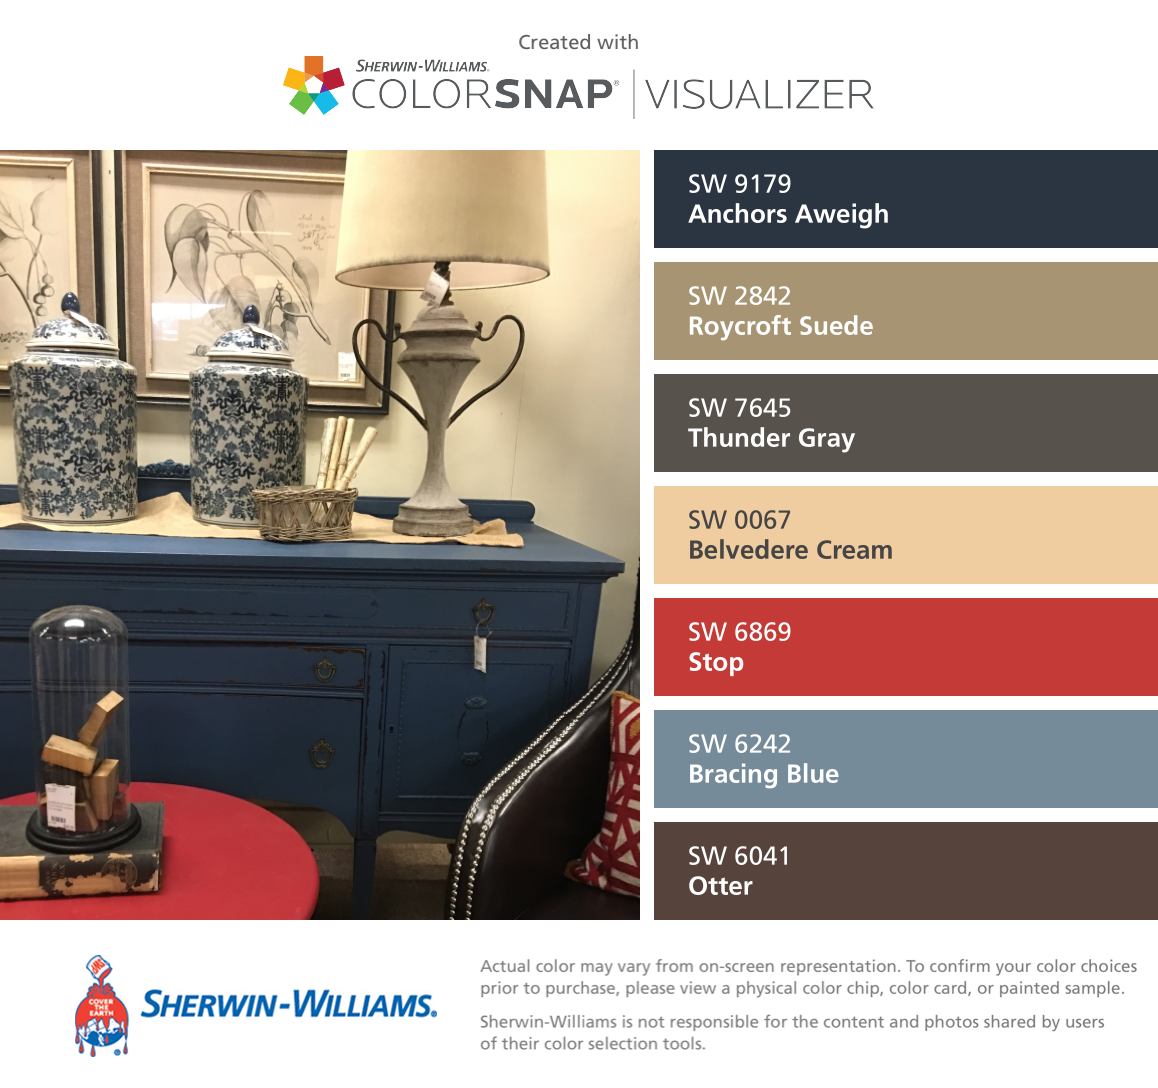 I Found These Colors With Colorsnap Visualizer For Iphone By Sherwin Williams Anchors Aweigh